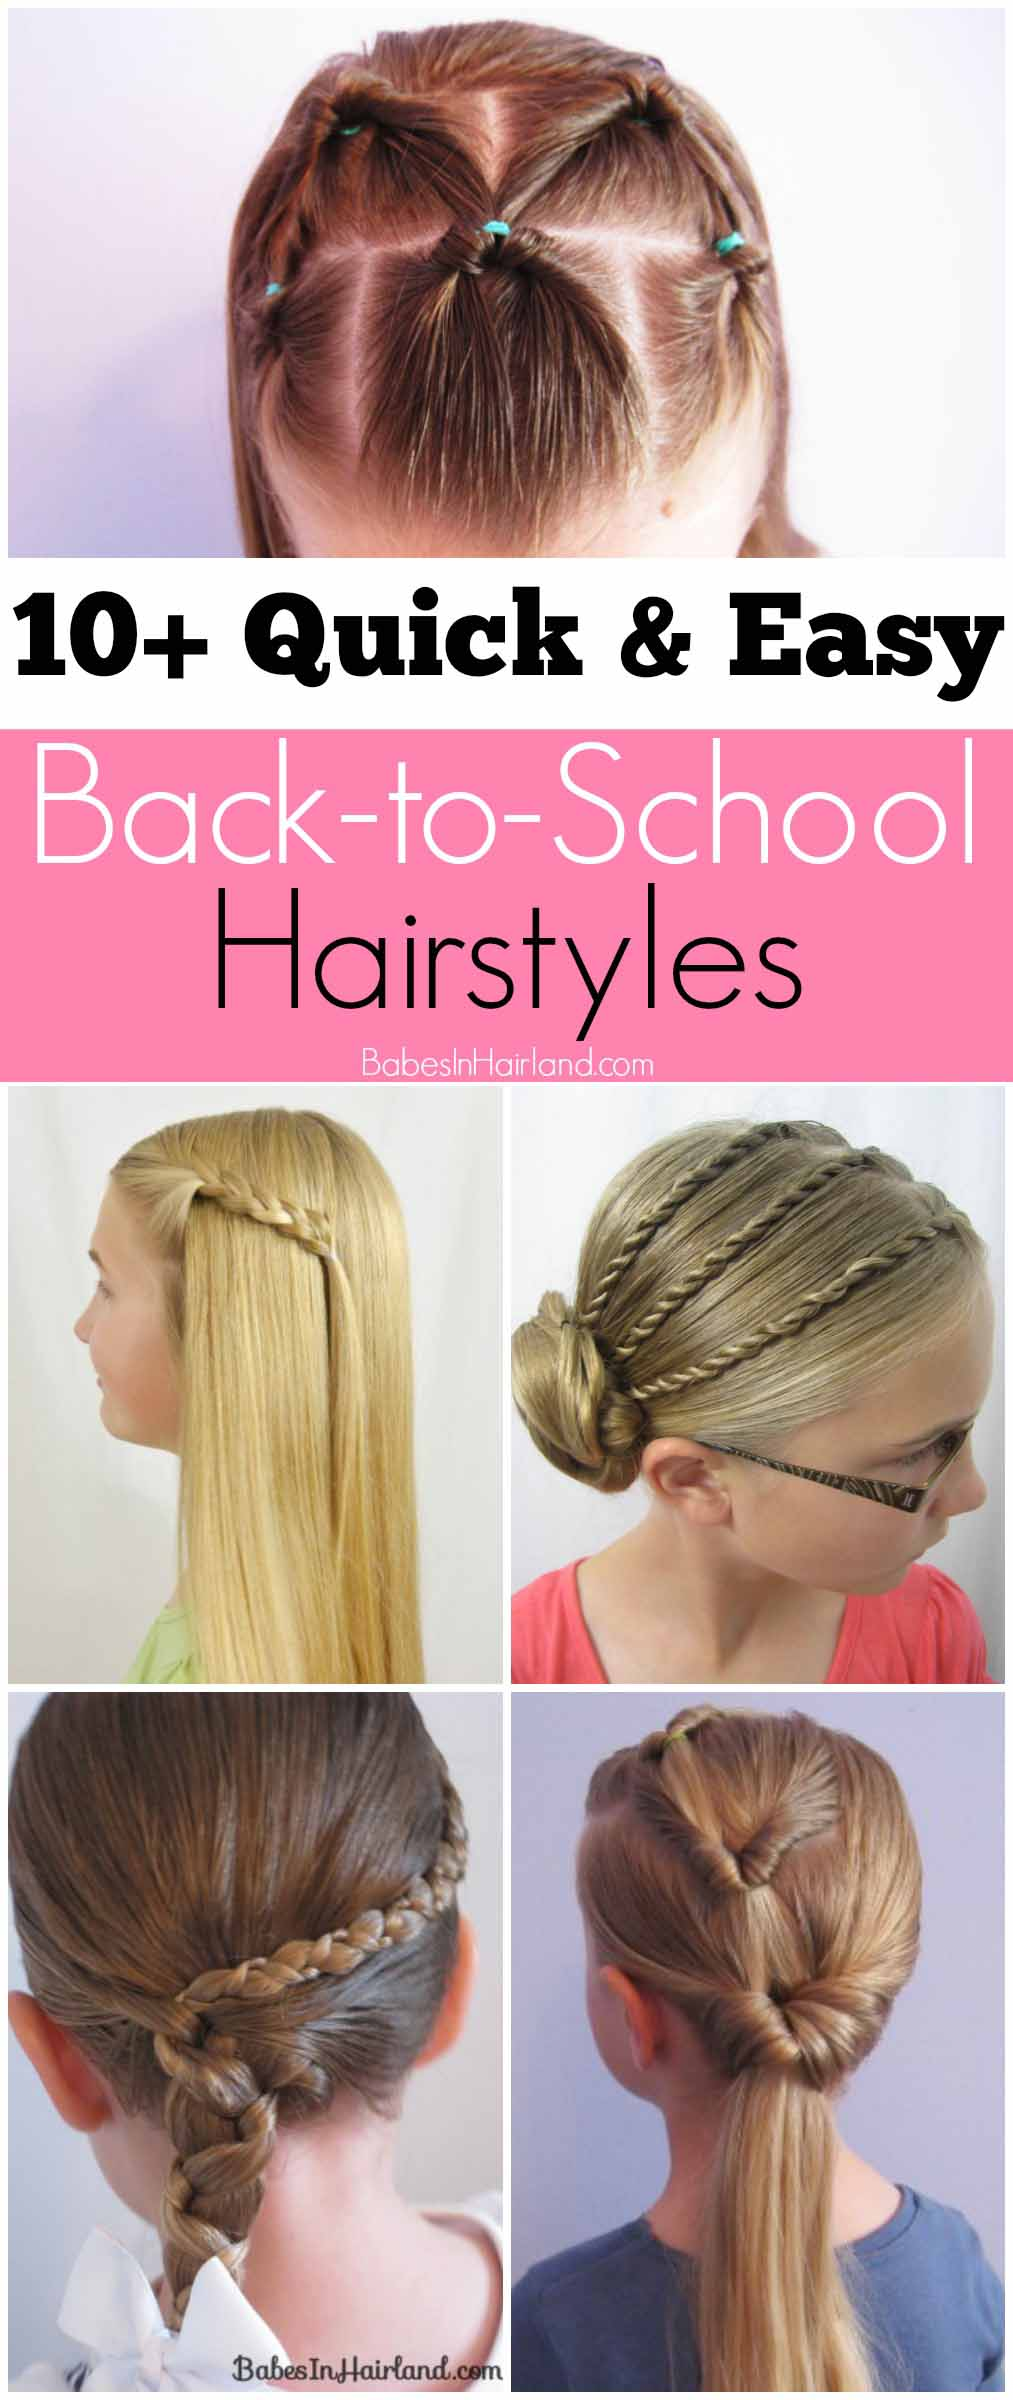 Peachy 10 Quick And Easy Back To School Hairstyles Babes In Hairland Short Hairstyles Gunalazisus